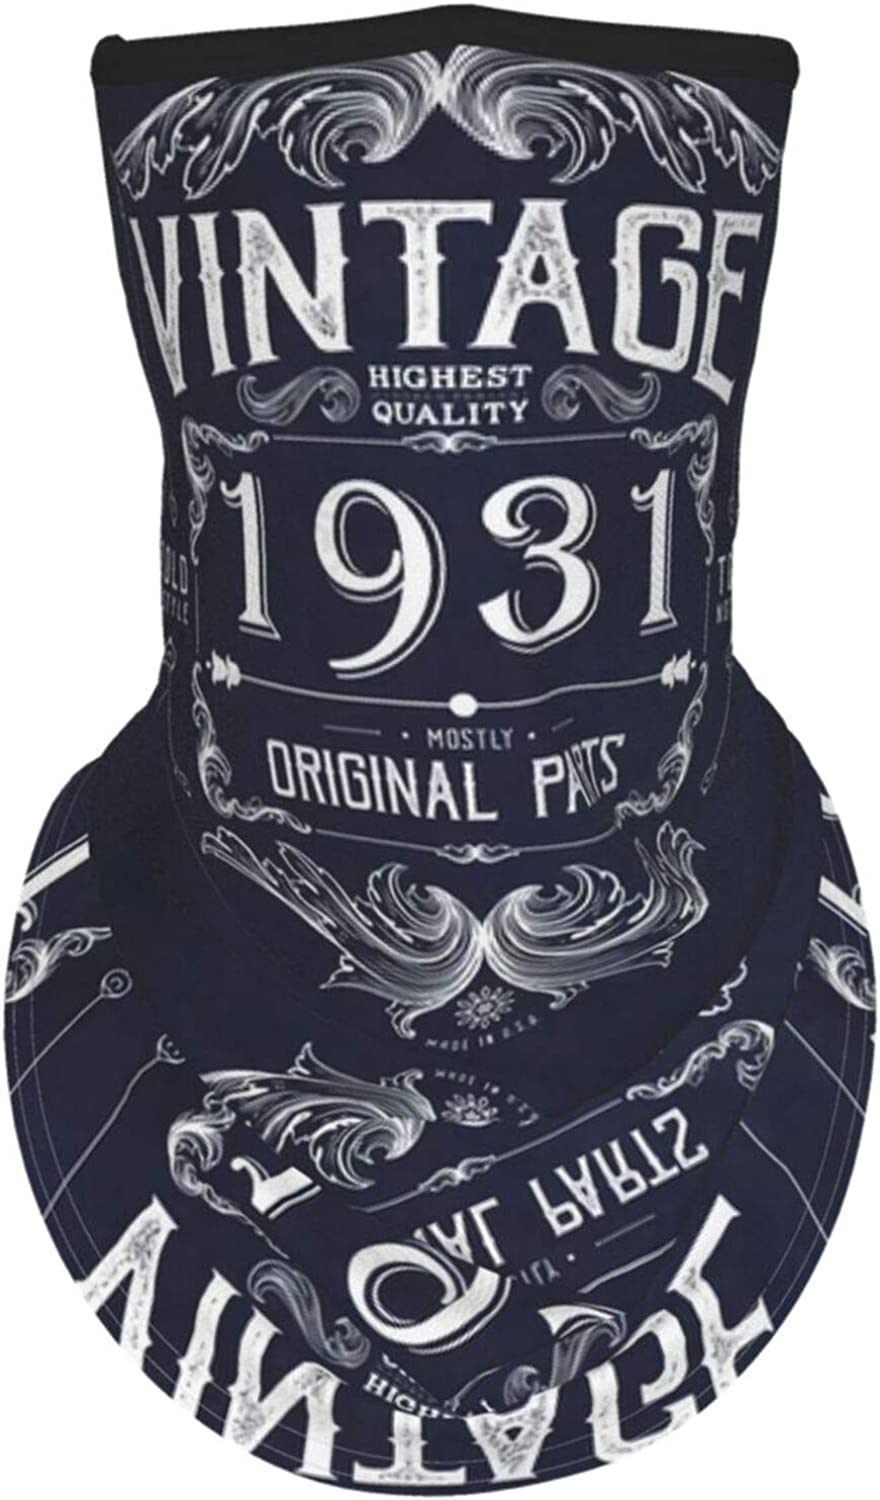 Ear Hangers Face Balaclava Vintage 1931 Mostly Original Parts Navy Protective Cover Wristband Bandanas Neck Gaiter Dust-Proof,Anti-Pungent Gas,Washable